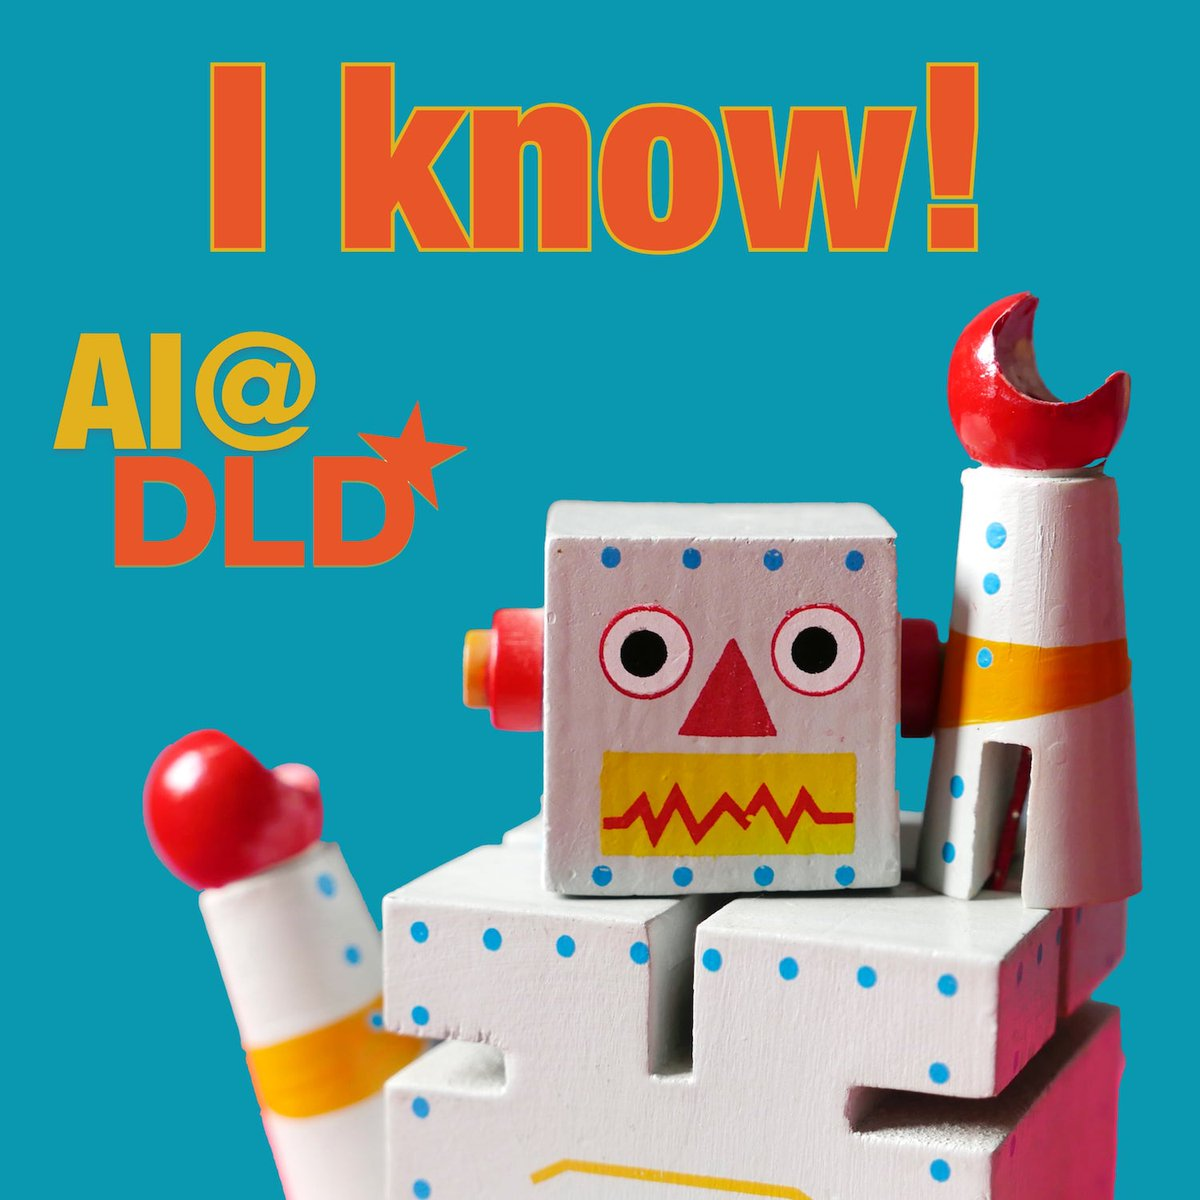 """test Twitter Media - One of #DLD19's major topics is #ArtificialIntelligence: """"This is not a race of man against machine."""" says @kaifulee. Read more on https://t.co/Kn5GHKIBfp https://t.co/8UVUQkgMJC"""